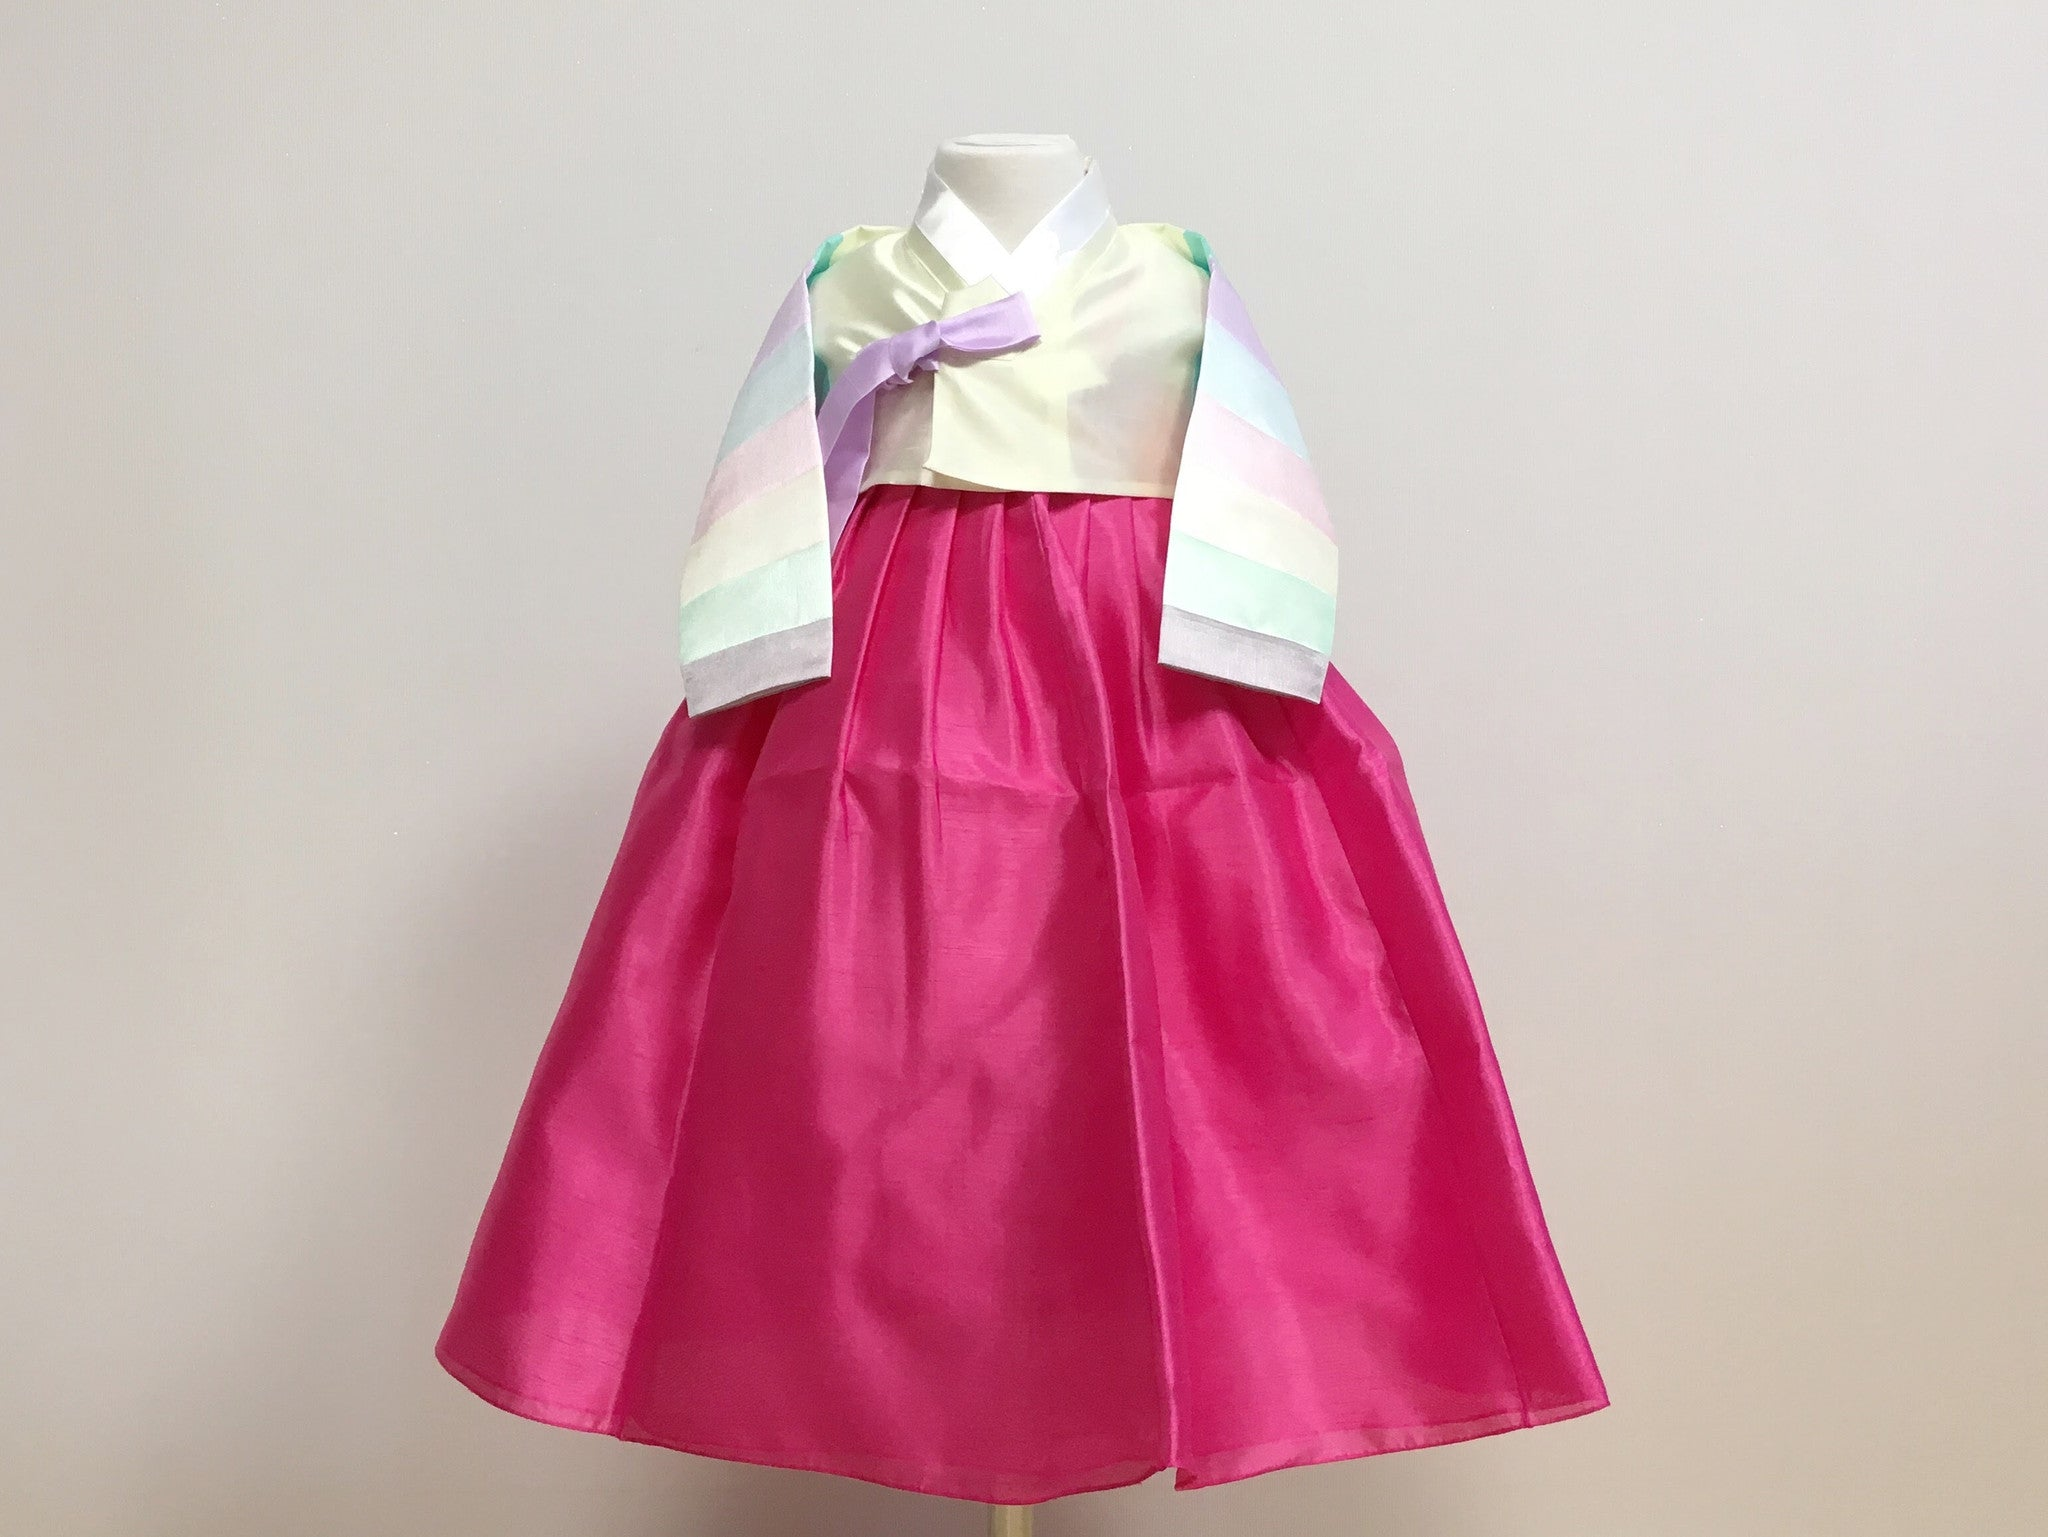 Pastel Girl's Hanbok (Rainbow Yellow Top)